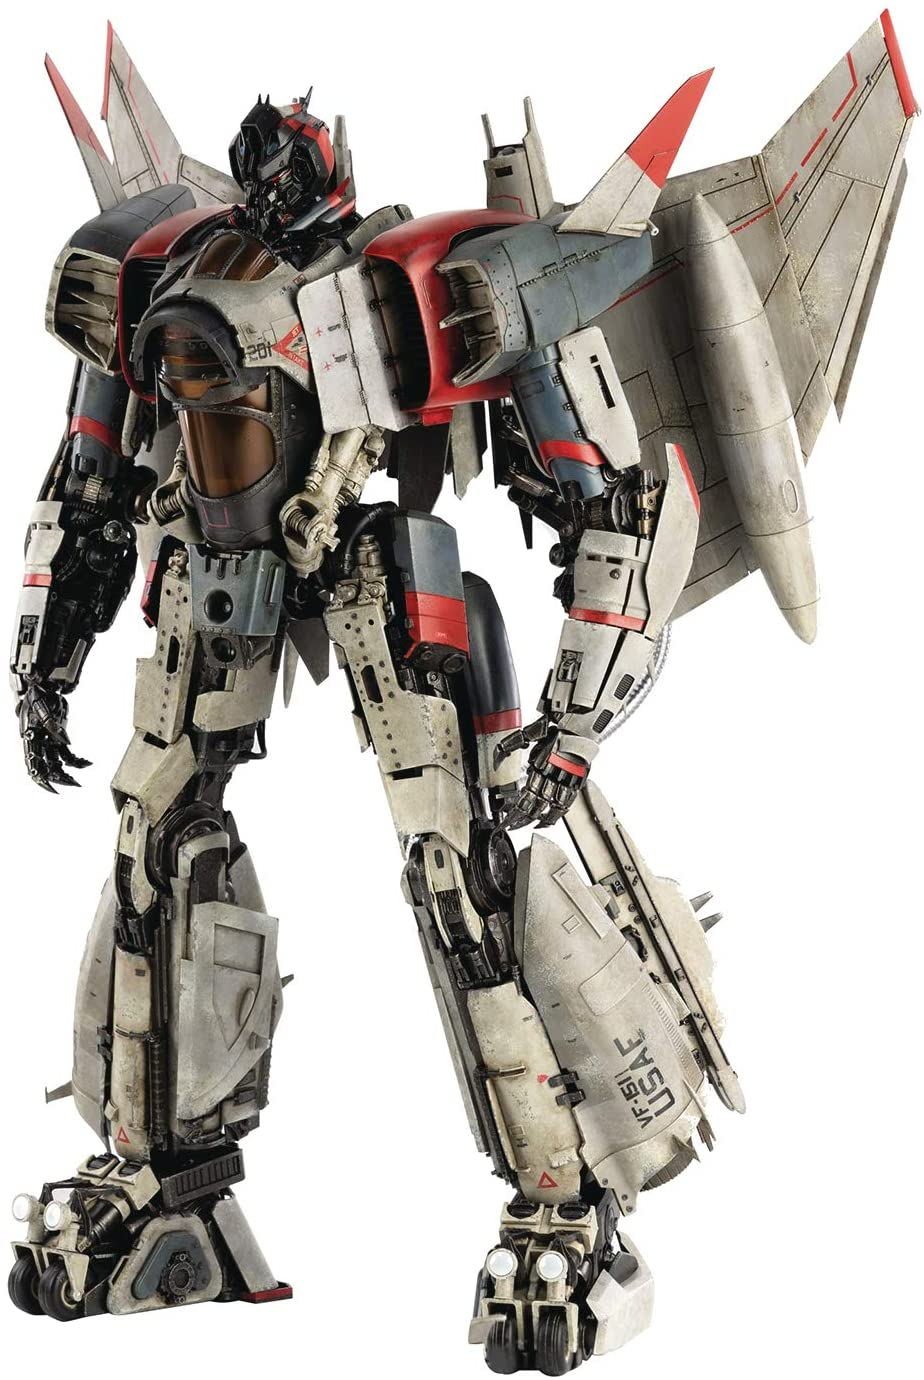 The Blitzwing premium figure from the Transformers 'Bumblebee' movie - Bent Corner